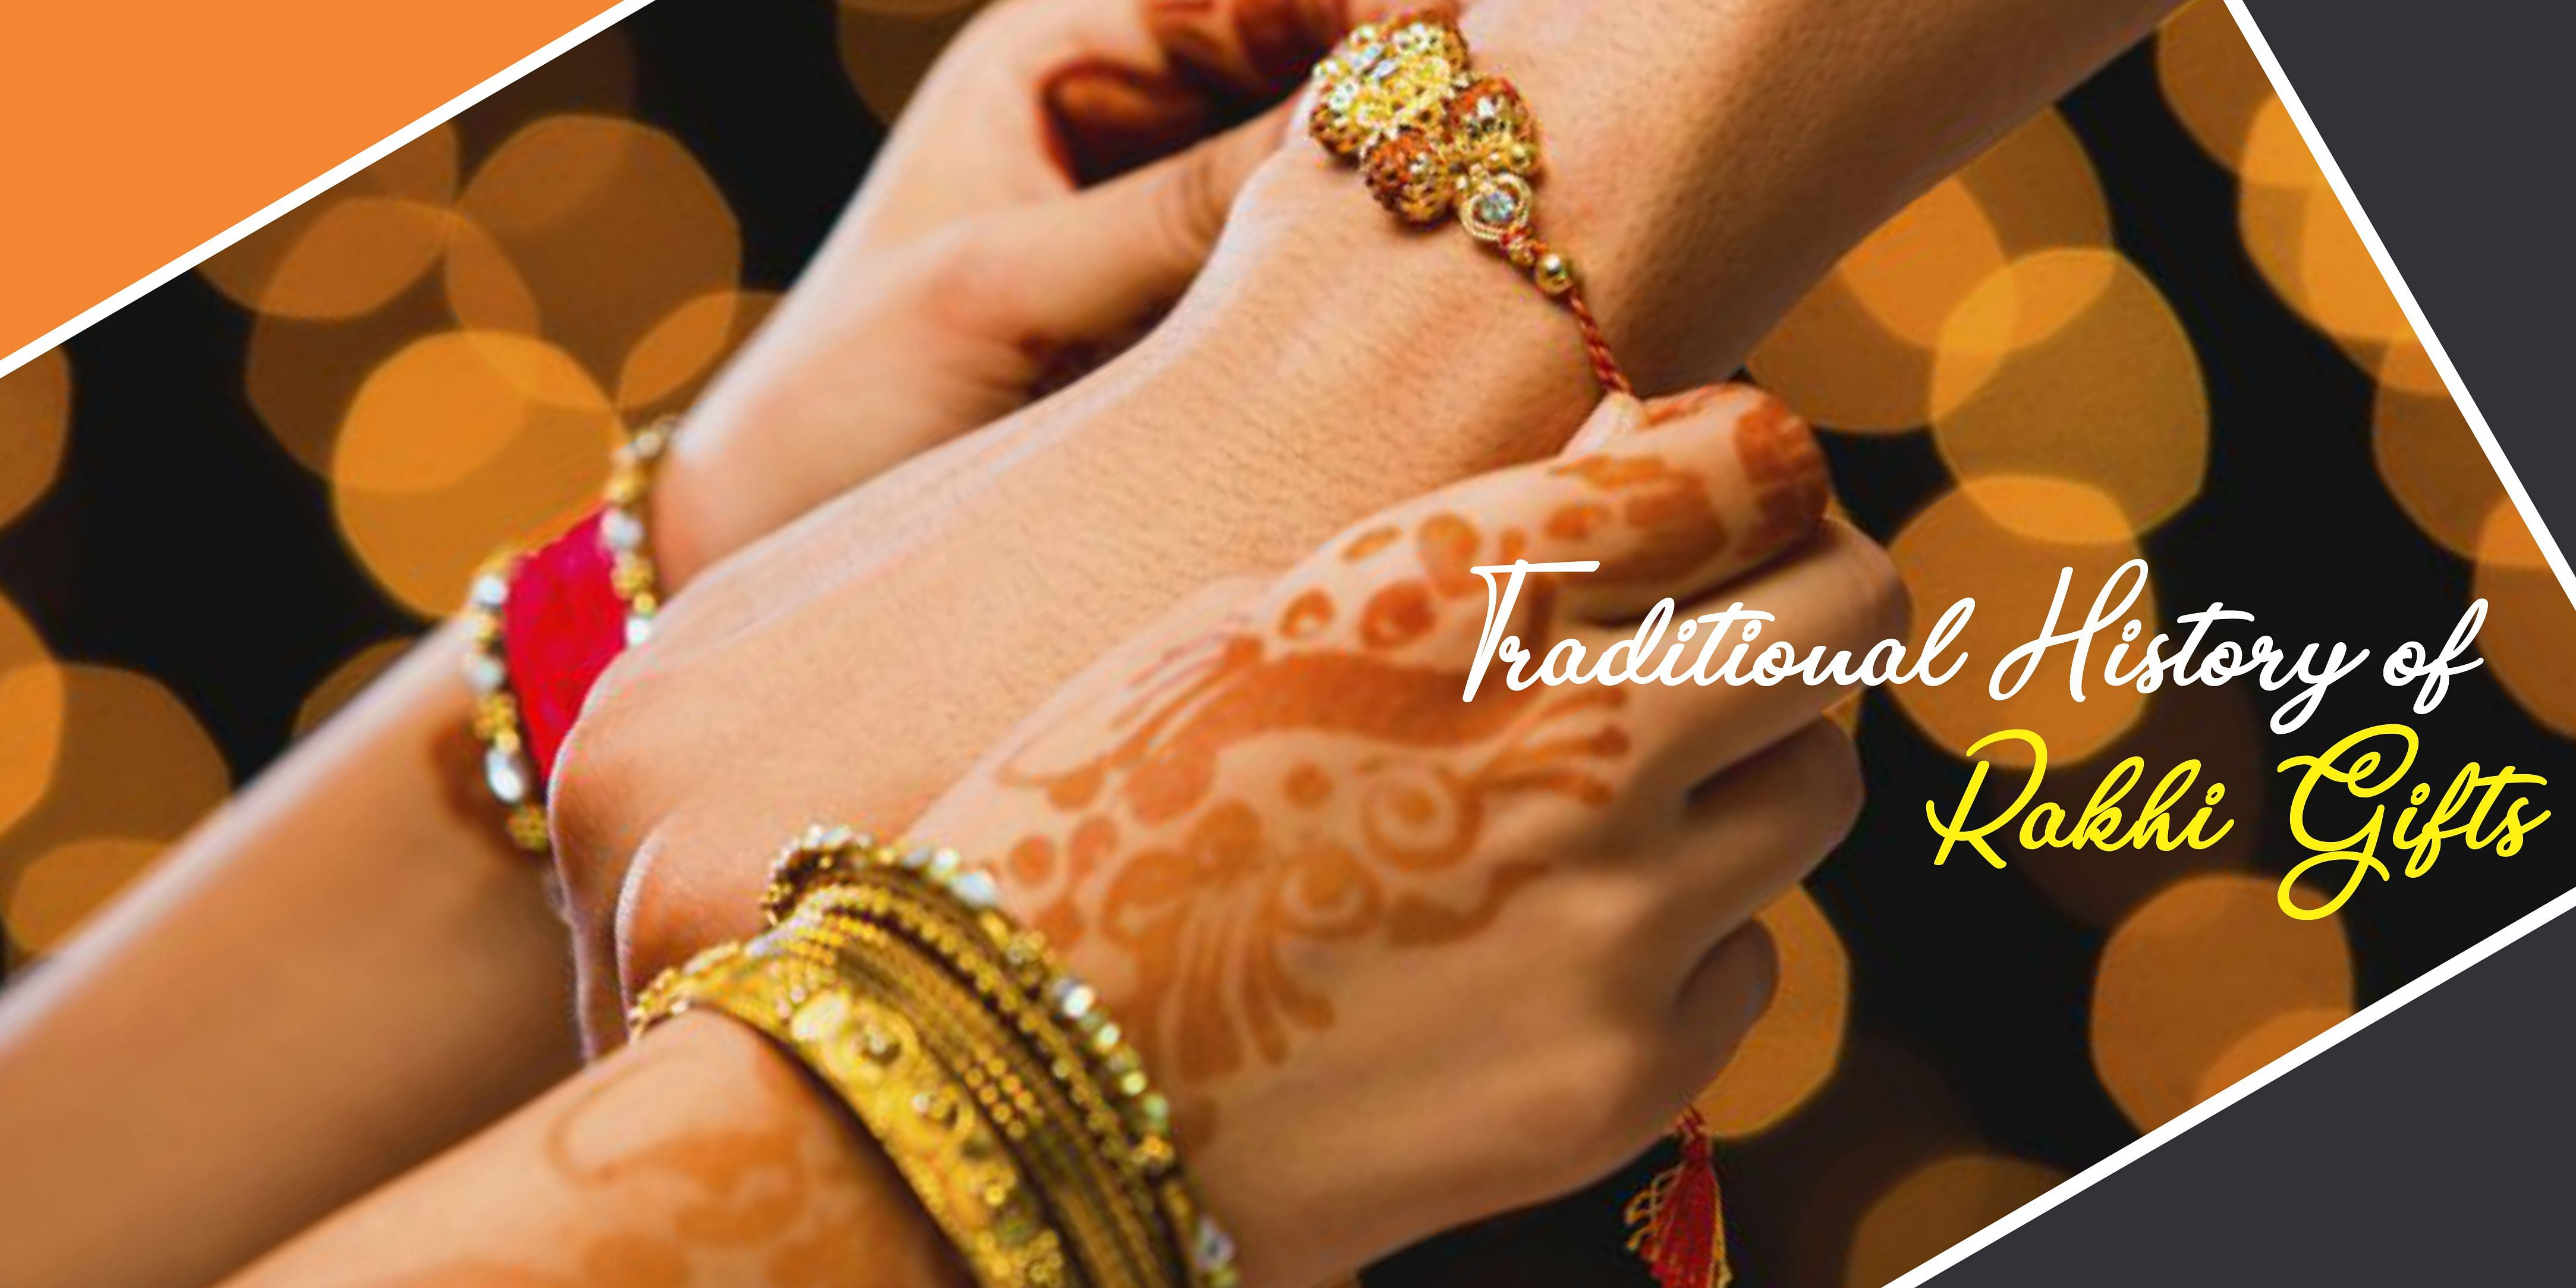 All You Need to Know About the Rakhi Return Gift Tradition